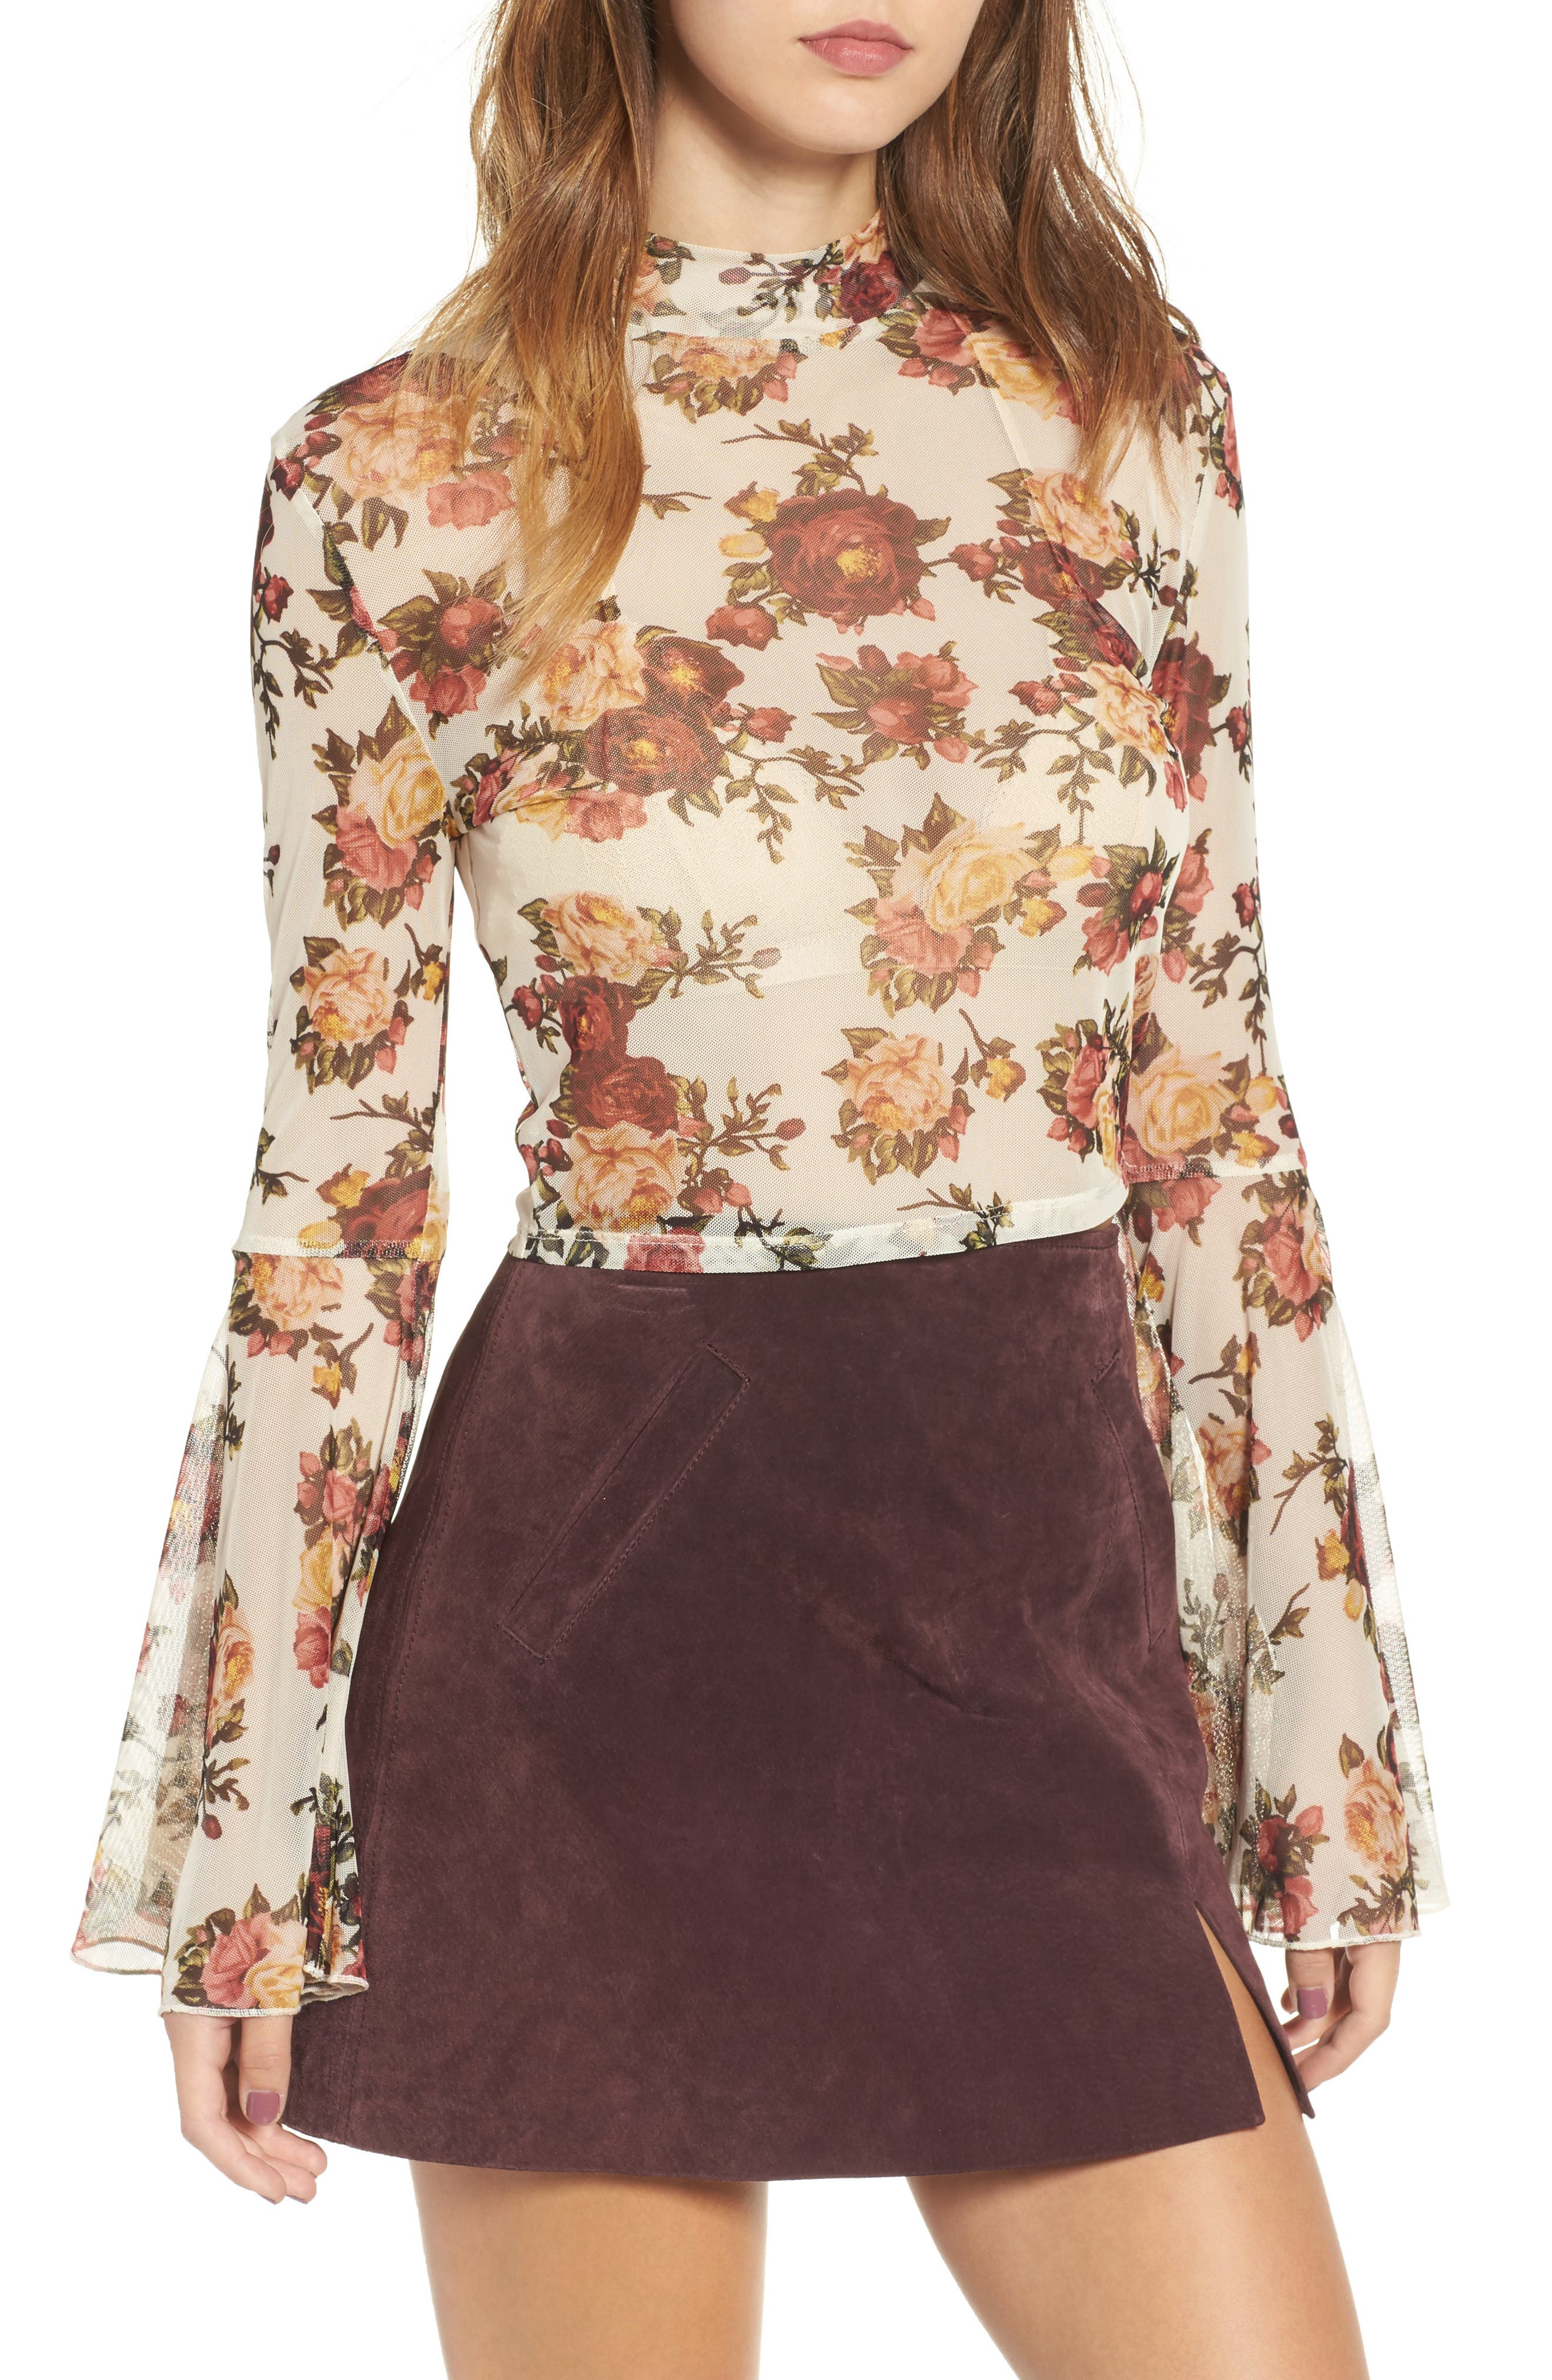 Main Image - Mimi Chica Floral Mesh Bell Sleeve Crop Top